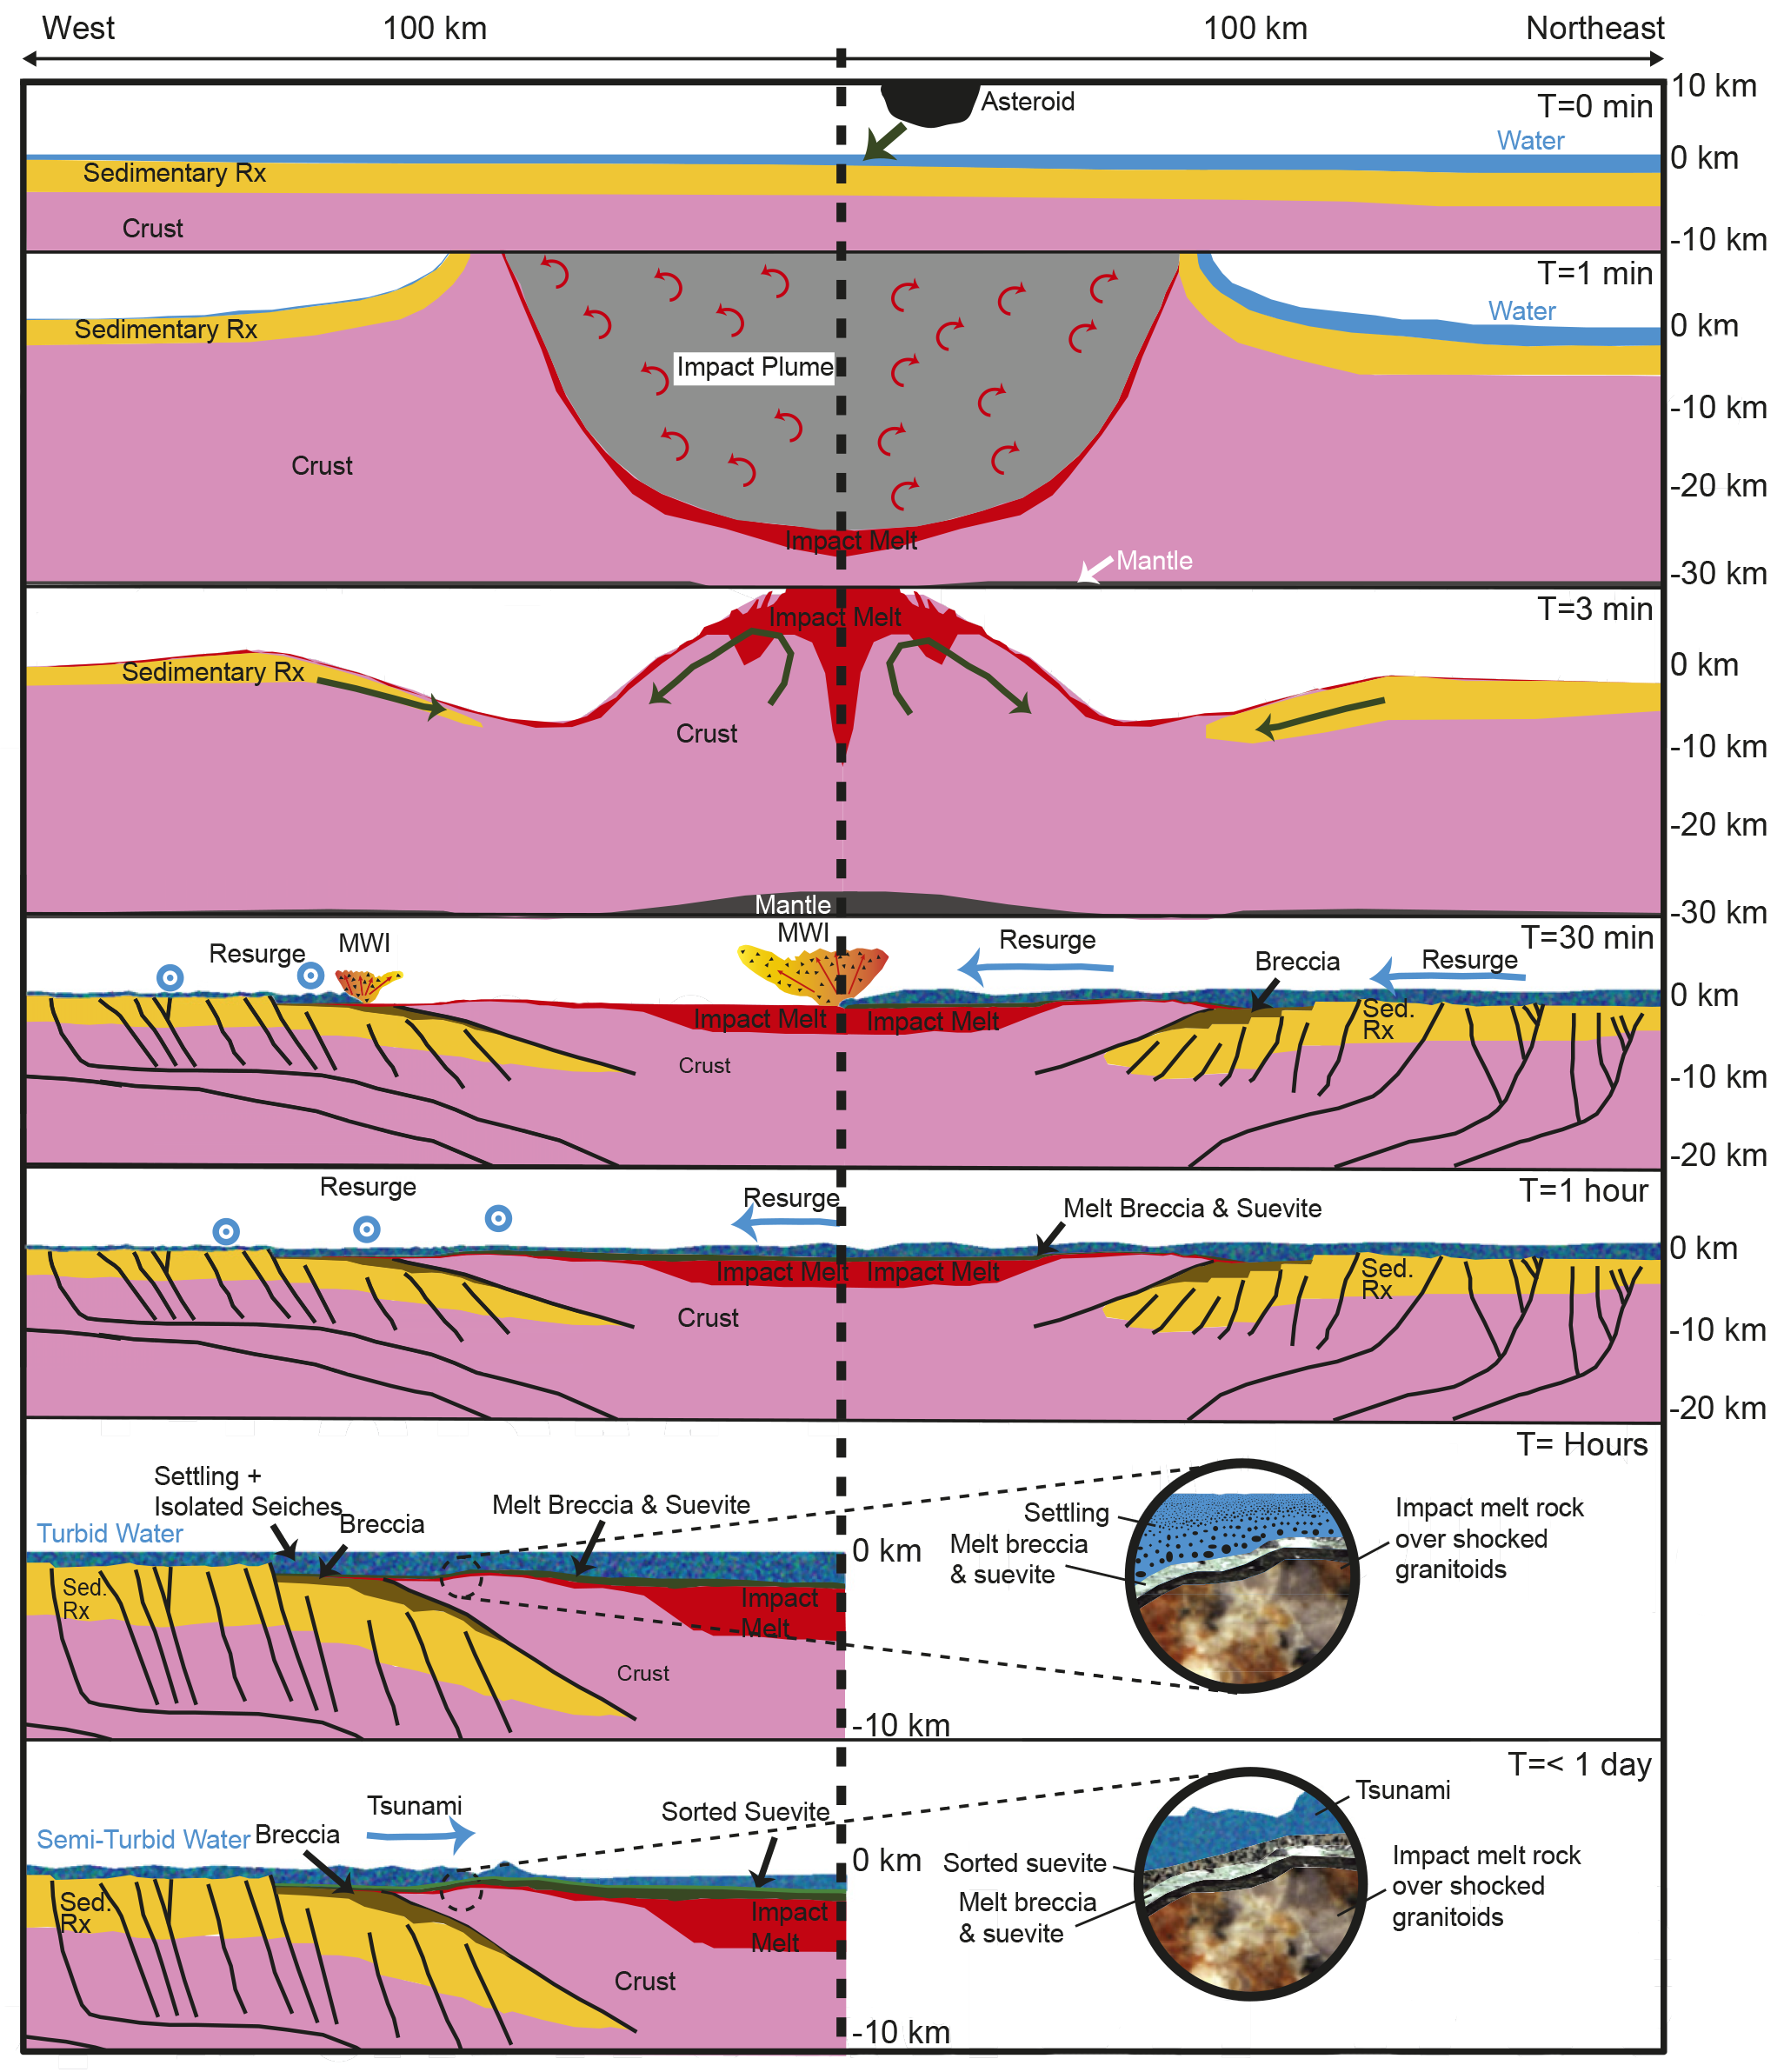 Here's the timeline of events recorded inside the impact crater.